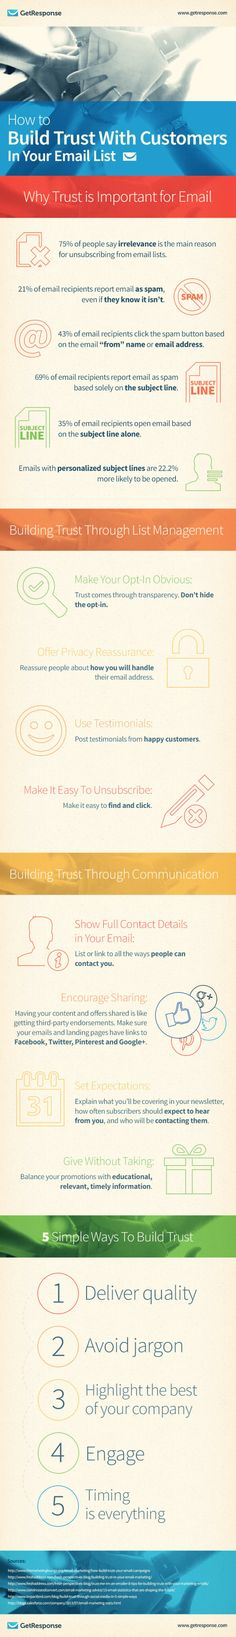 Better Email Marketing: Infographic - How To Build Trust With Customers In Your Email List Inbound Marketing, Email Marketing Software, Marketing Automation, Marketing Program, Marketing Digital, Internet Marketing, Affiliate Marketing, Online Marketing, Content Marketing